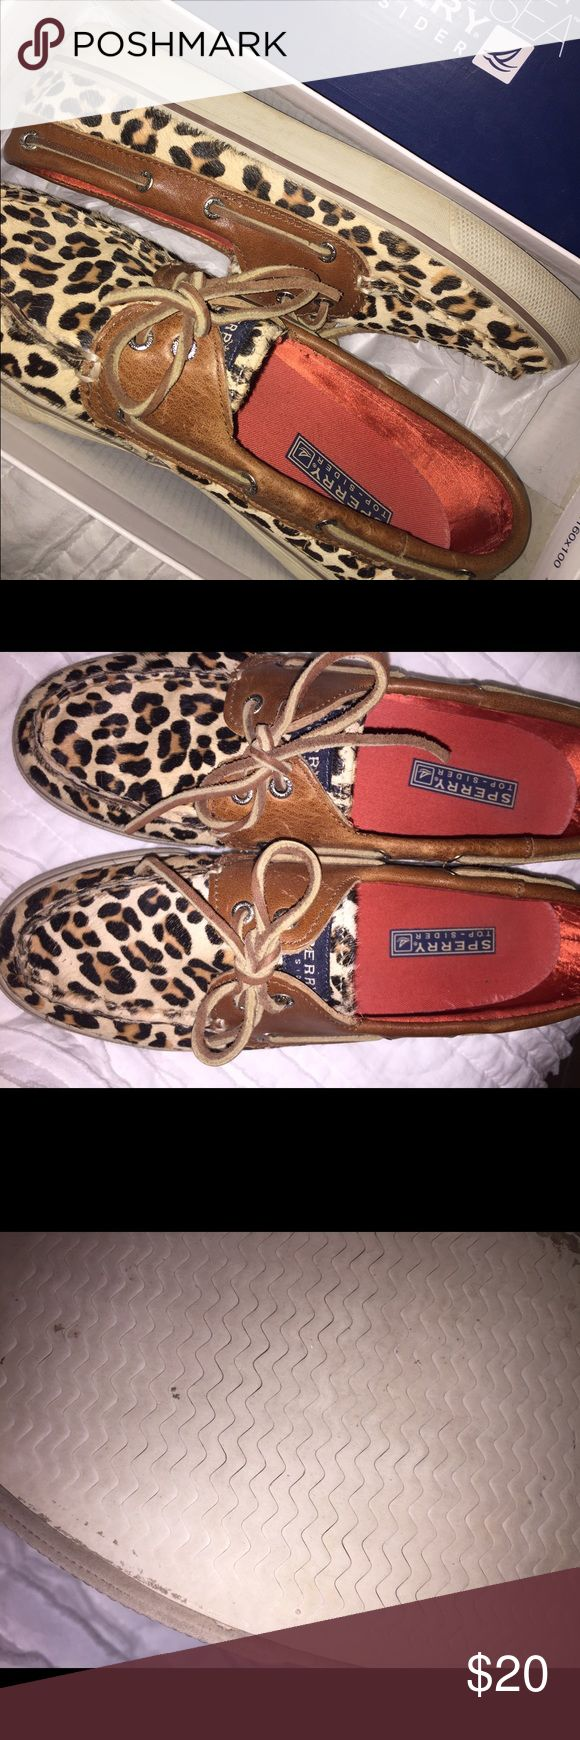 Leopard Sperry Slip-ons Looove these! So cute leopard fake fur texture. Minimal wear on soles. Sperry Top-Sider Shoes